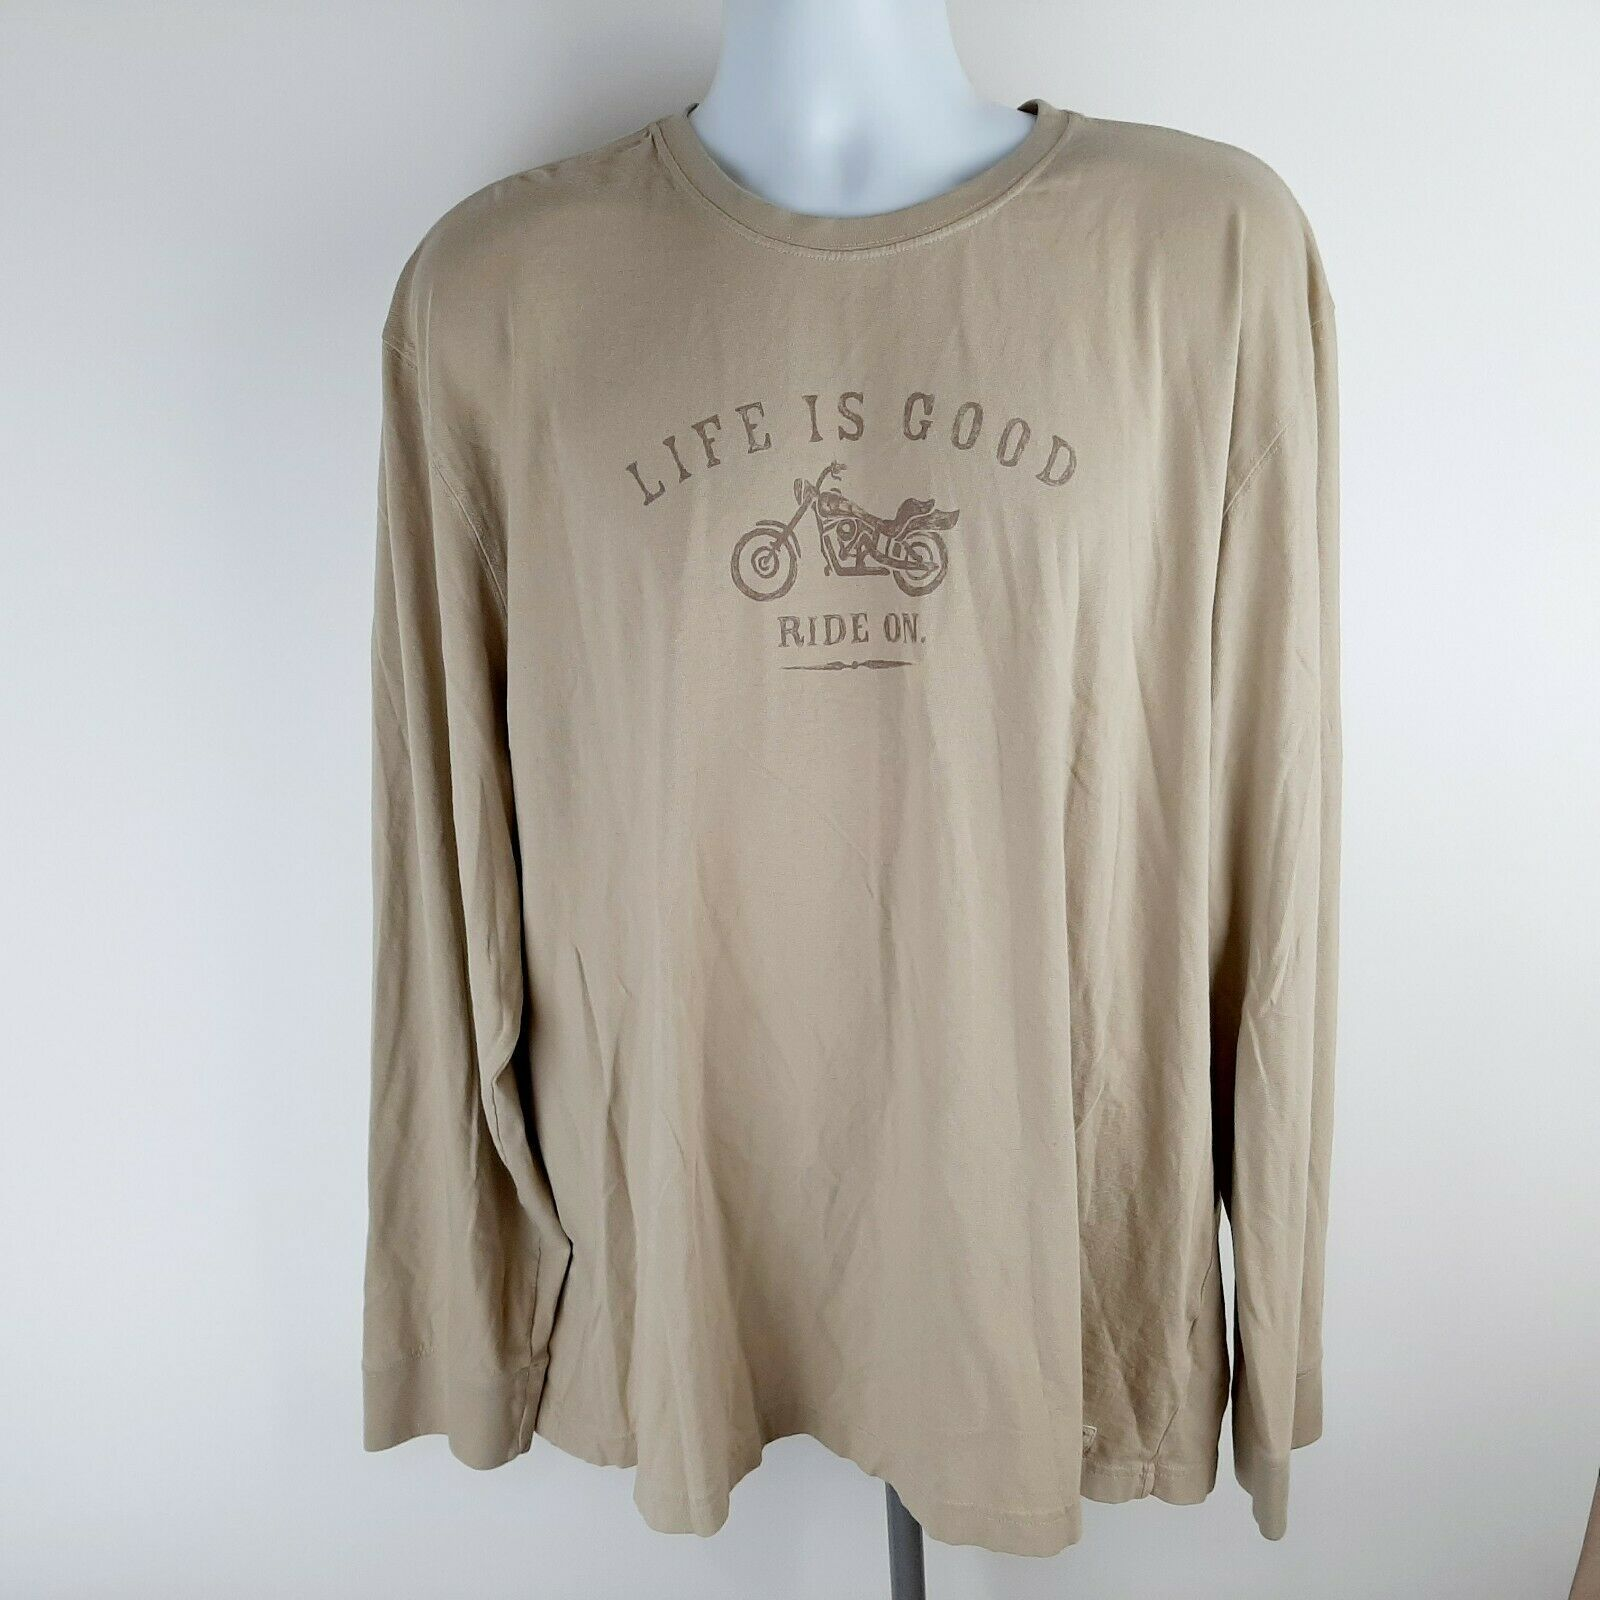 Primary image for Life Is Good Men's Long Sleeve Tee Shirt Size 2XL Beige Motorcycle D350